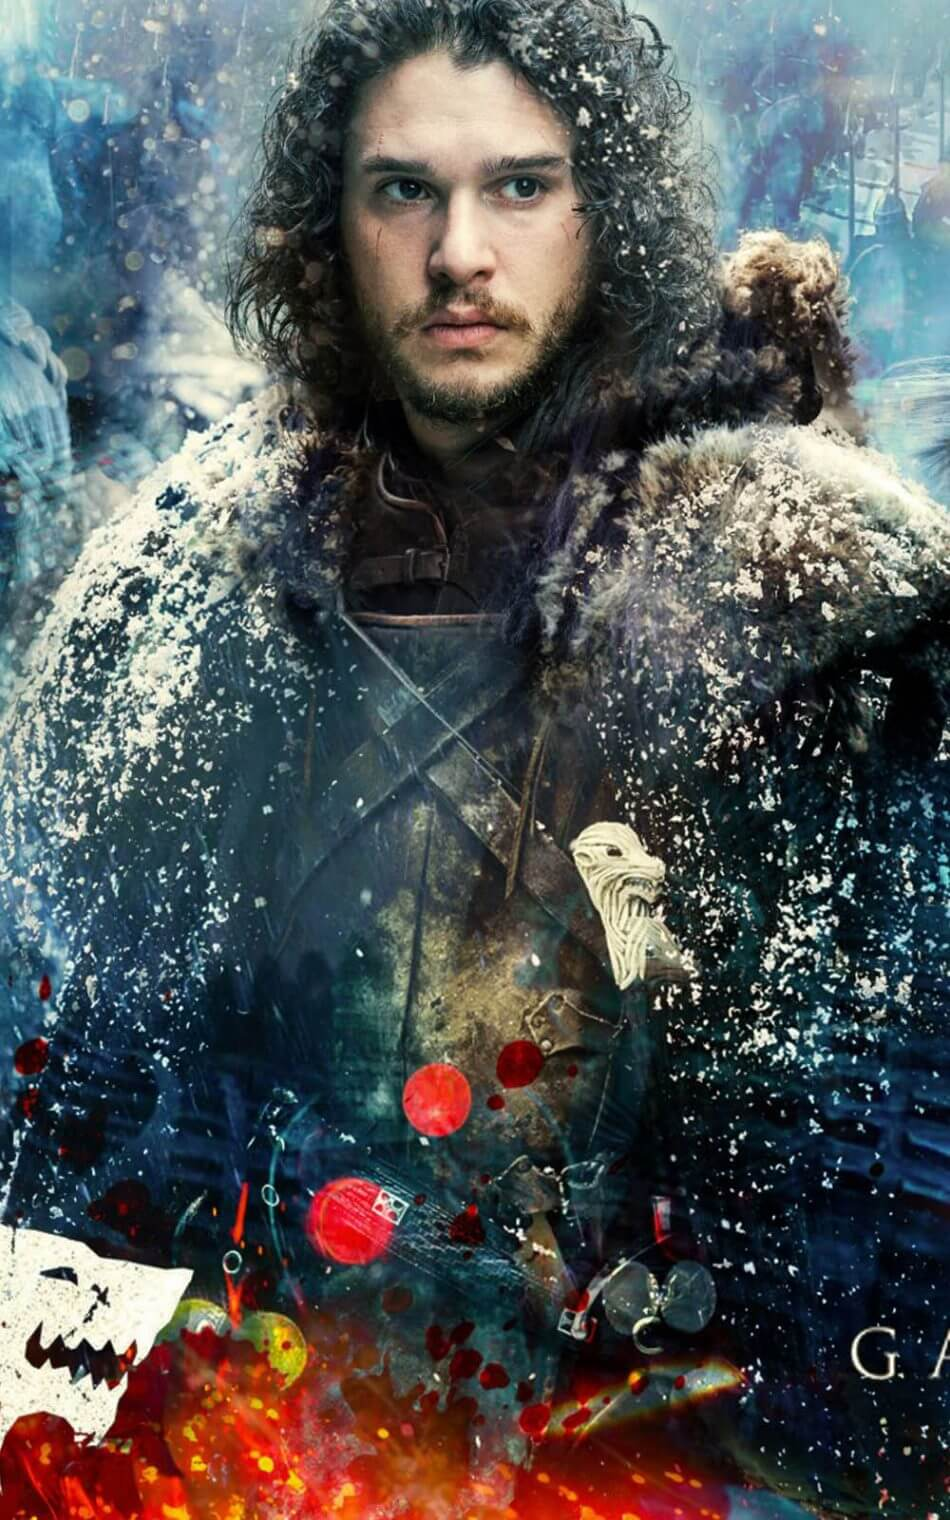 game of thrones wallpaper phone